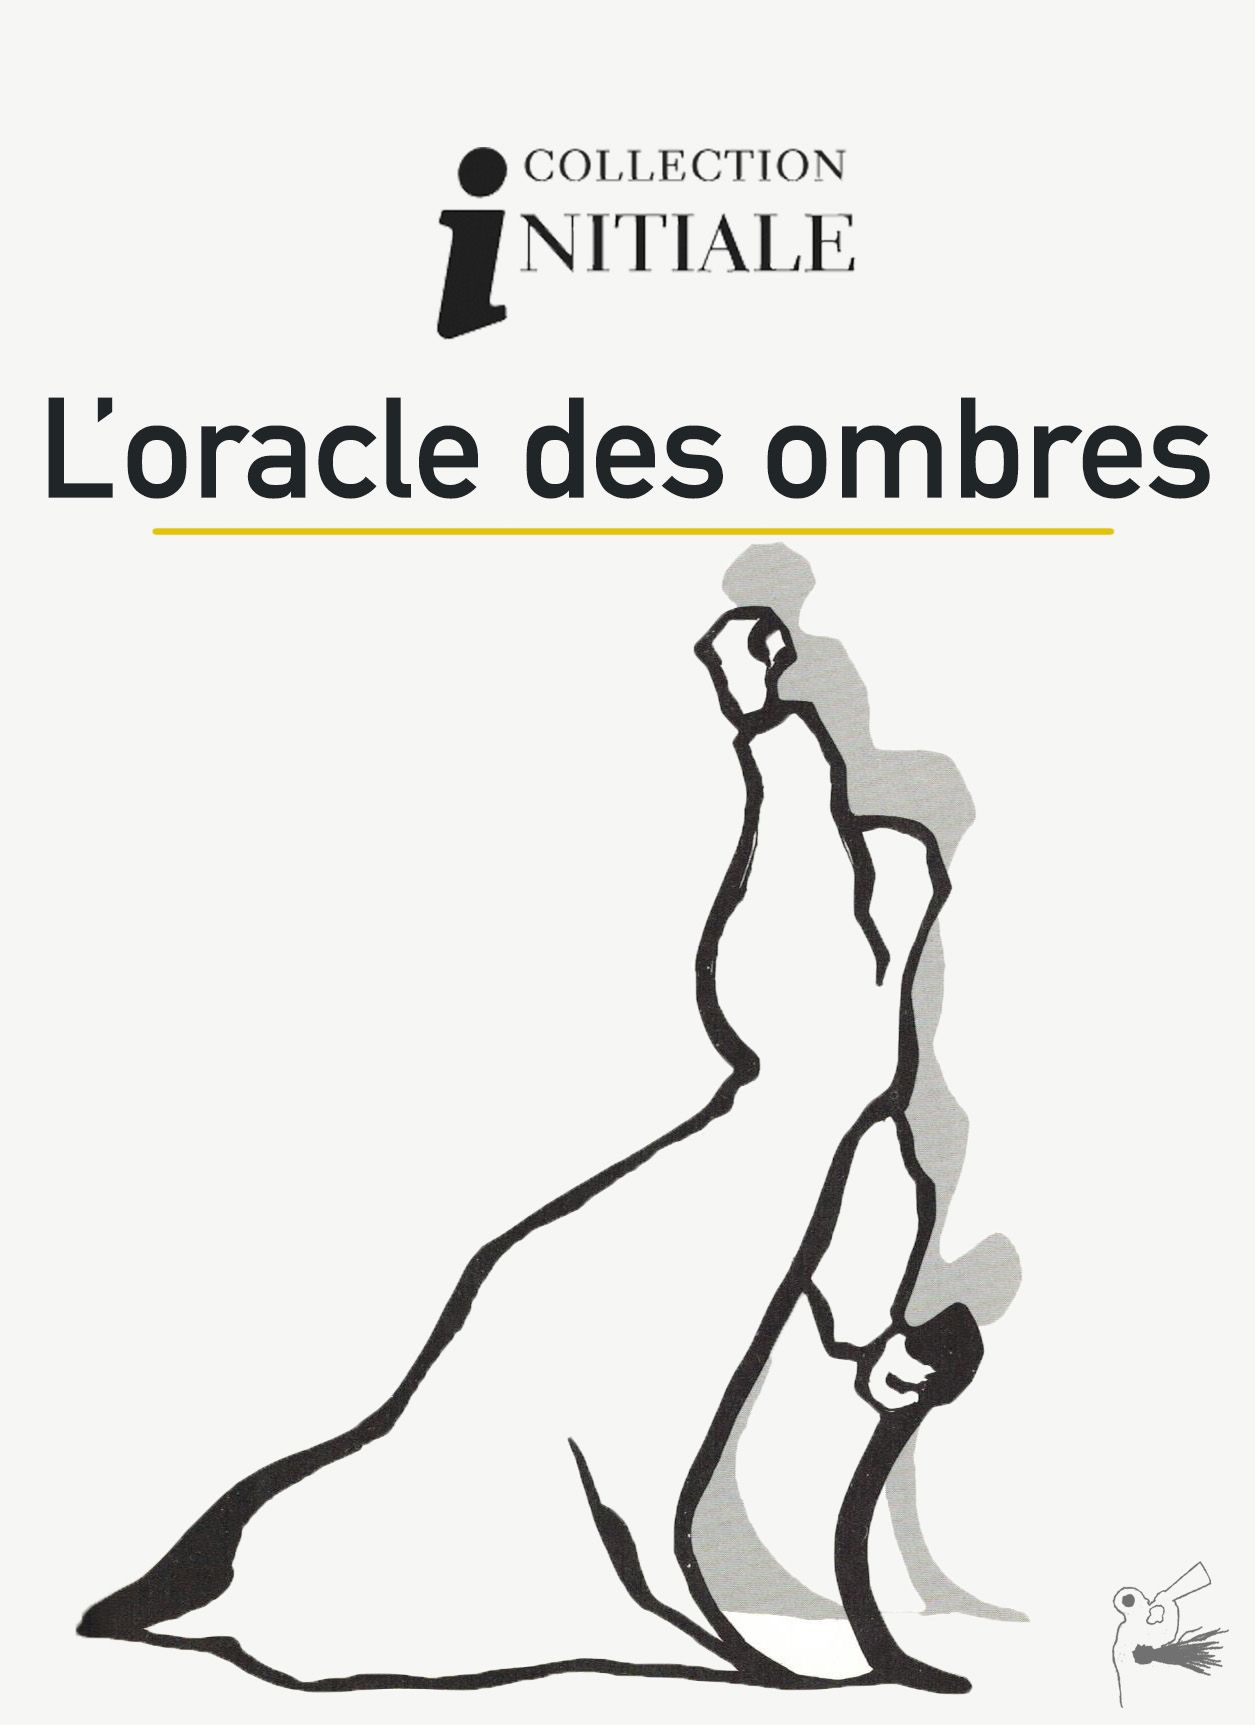 Oracle des ombres